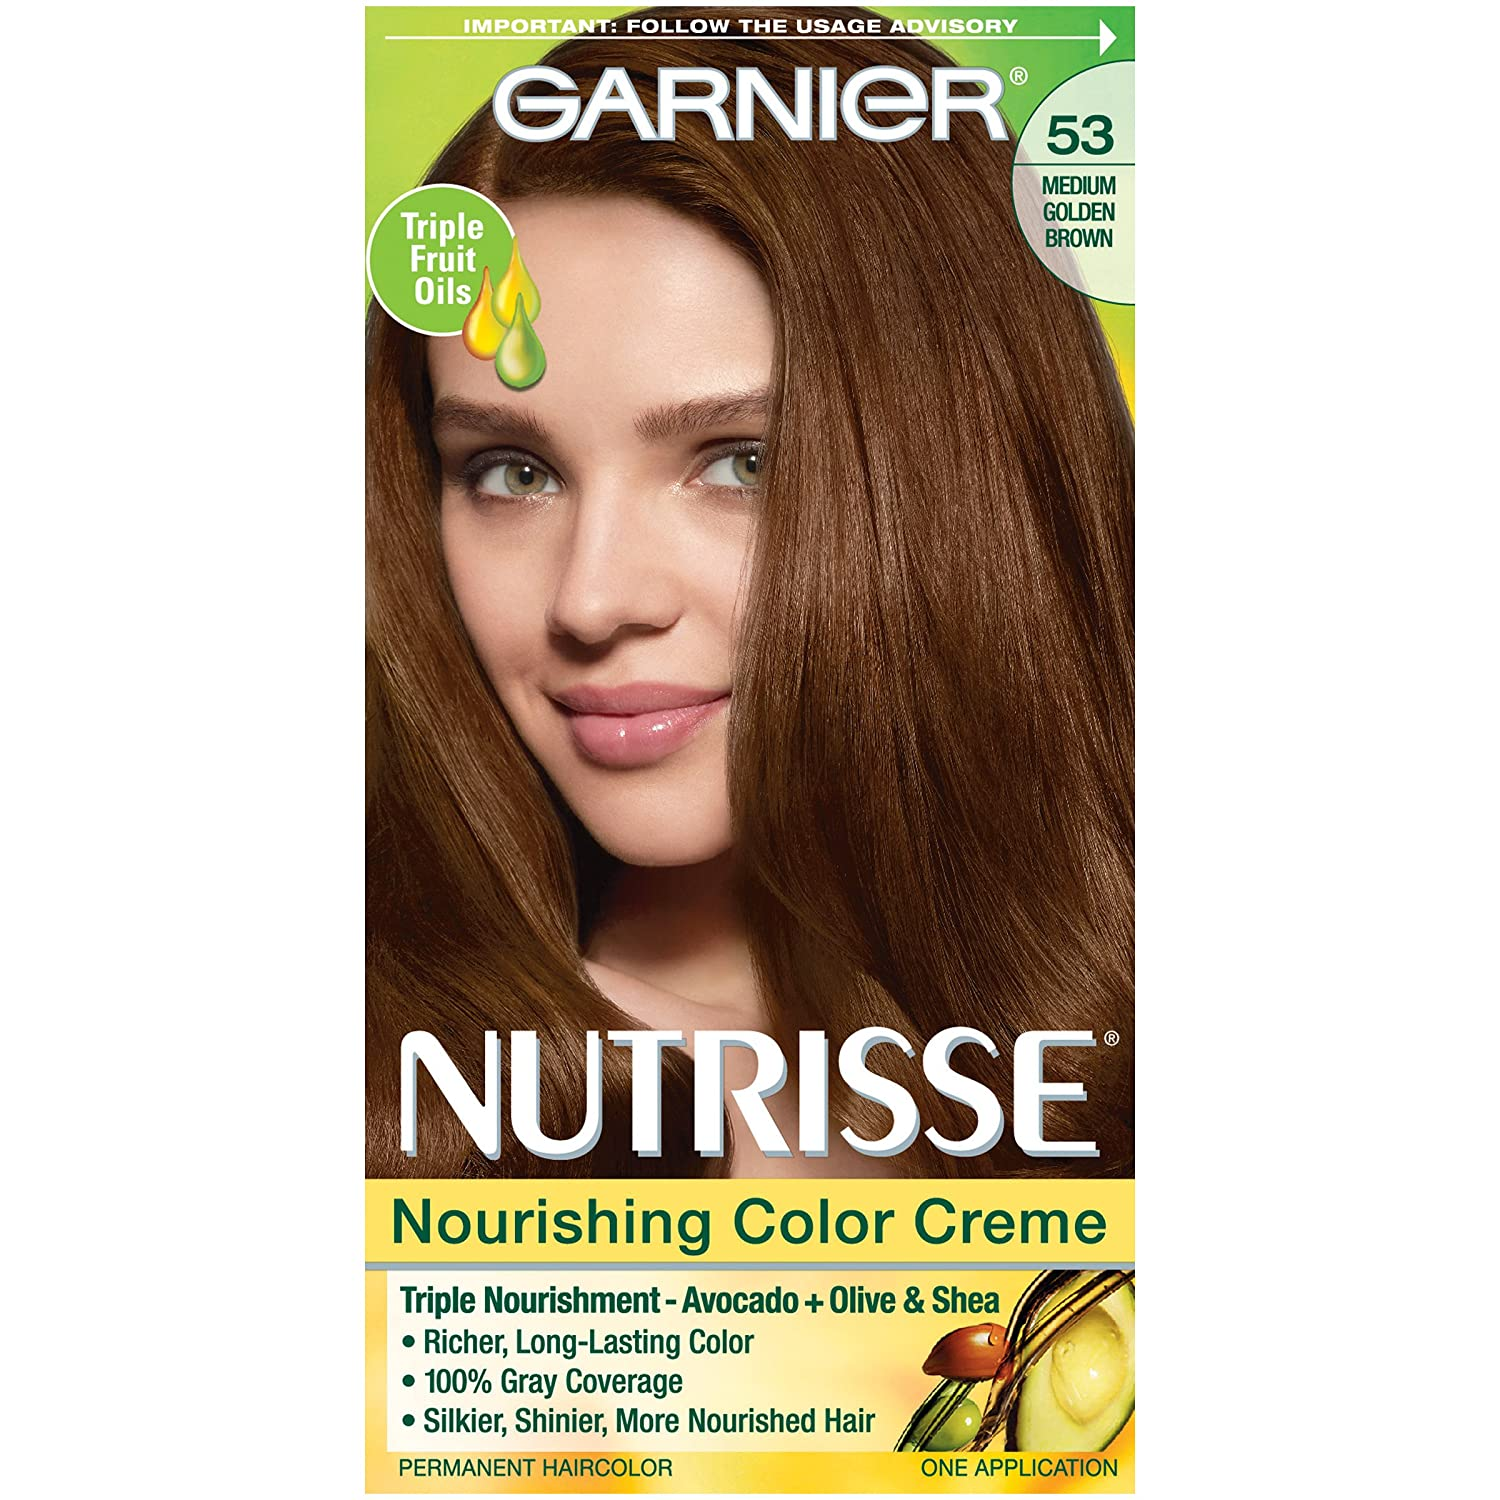 Medium Golden Brown Hair Dye Garnier 2015darrikk